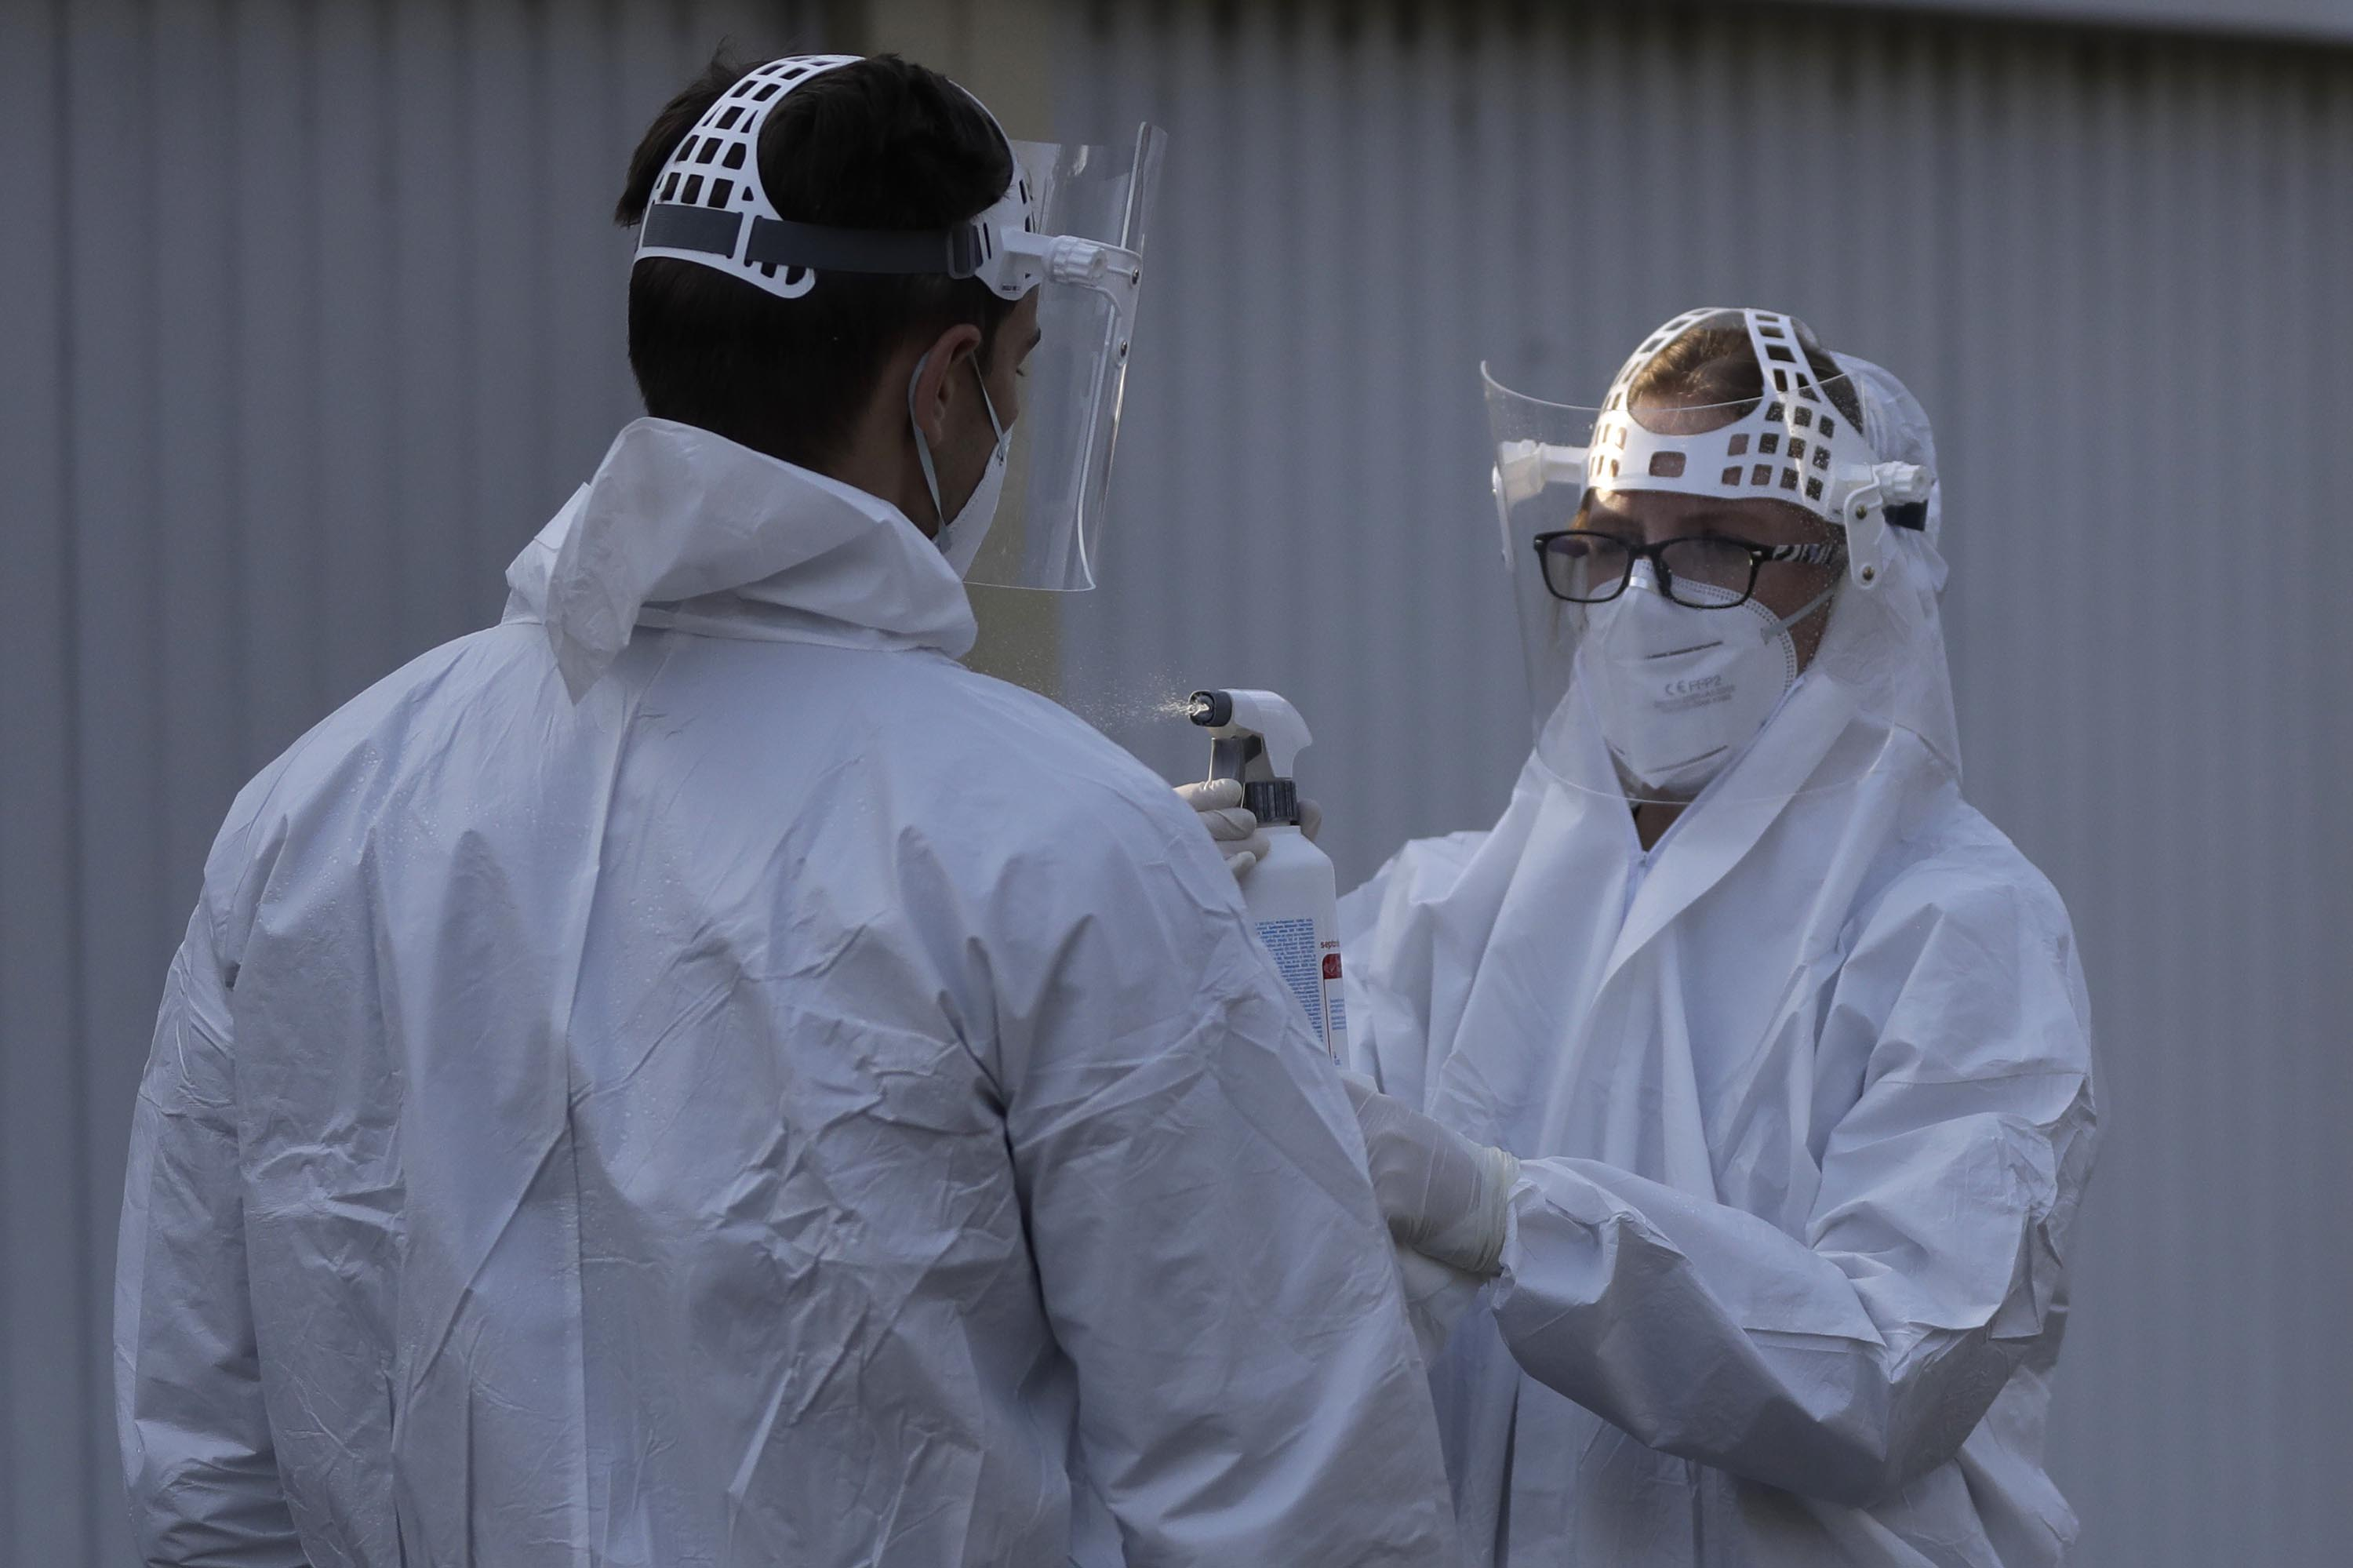 A healthcare worker has his protective suit disinfected by another worker at a COVID-19 sampling station in Prague, Czech Republic, on September 21.